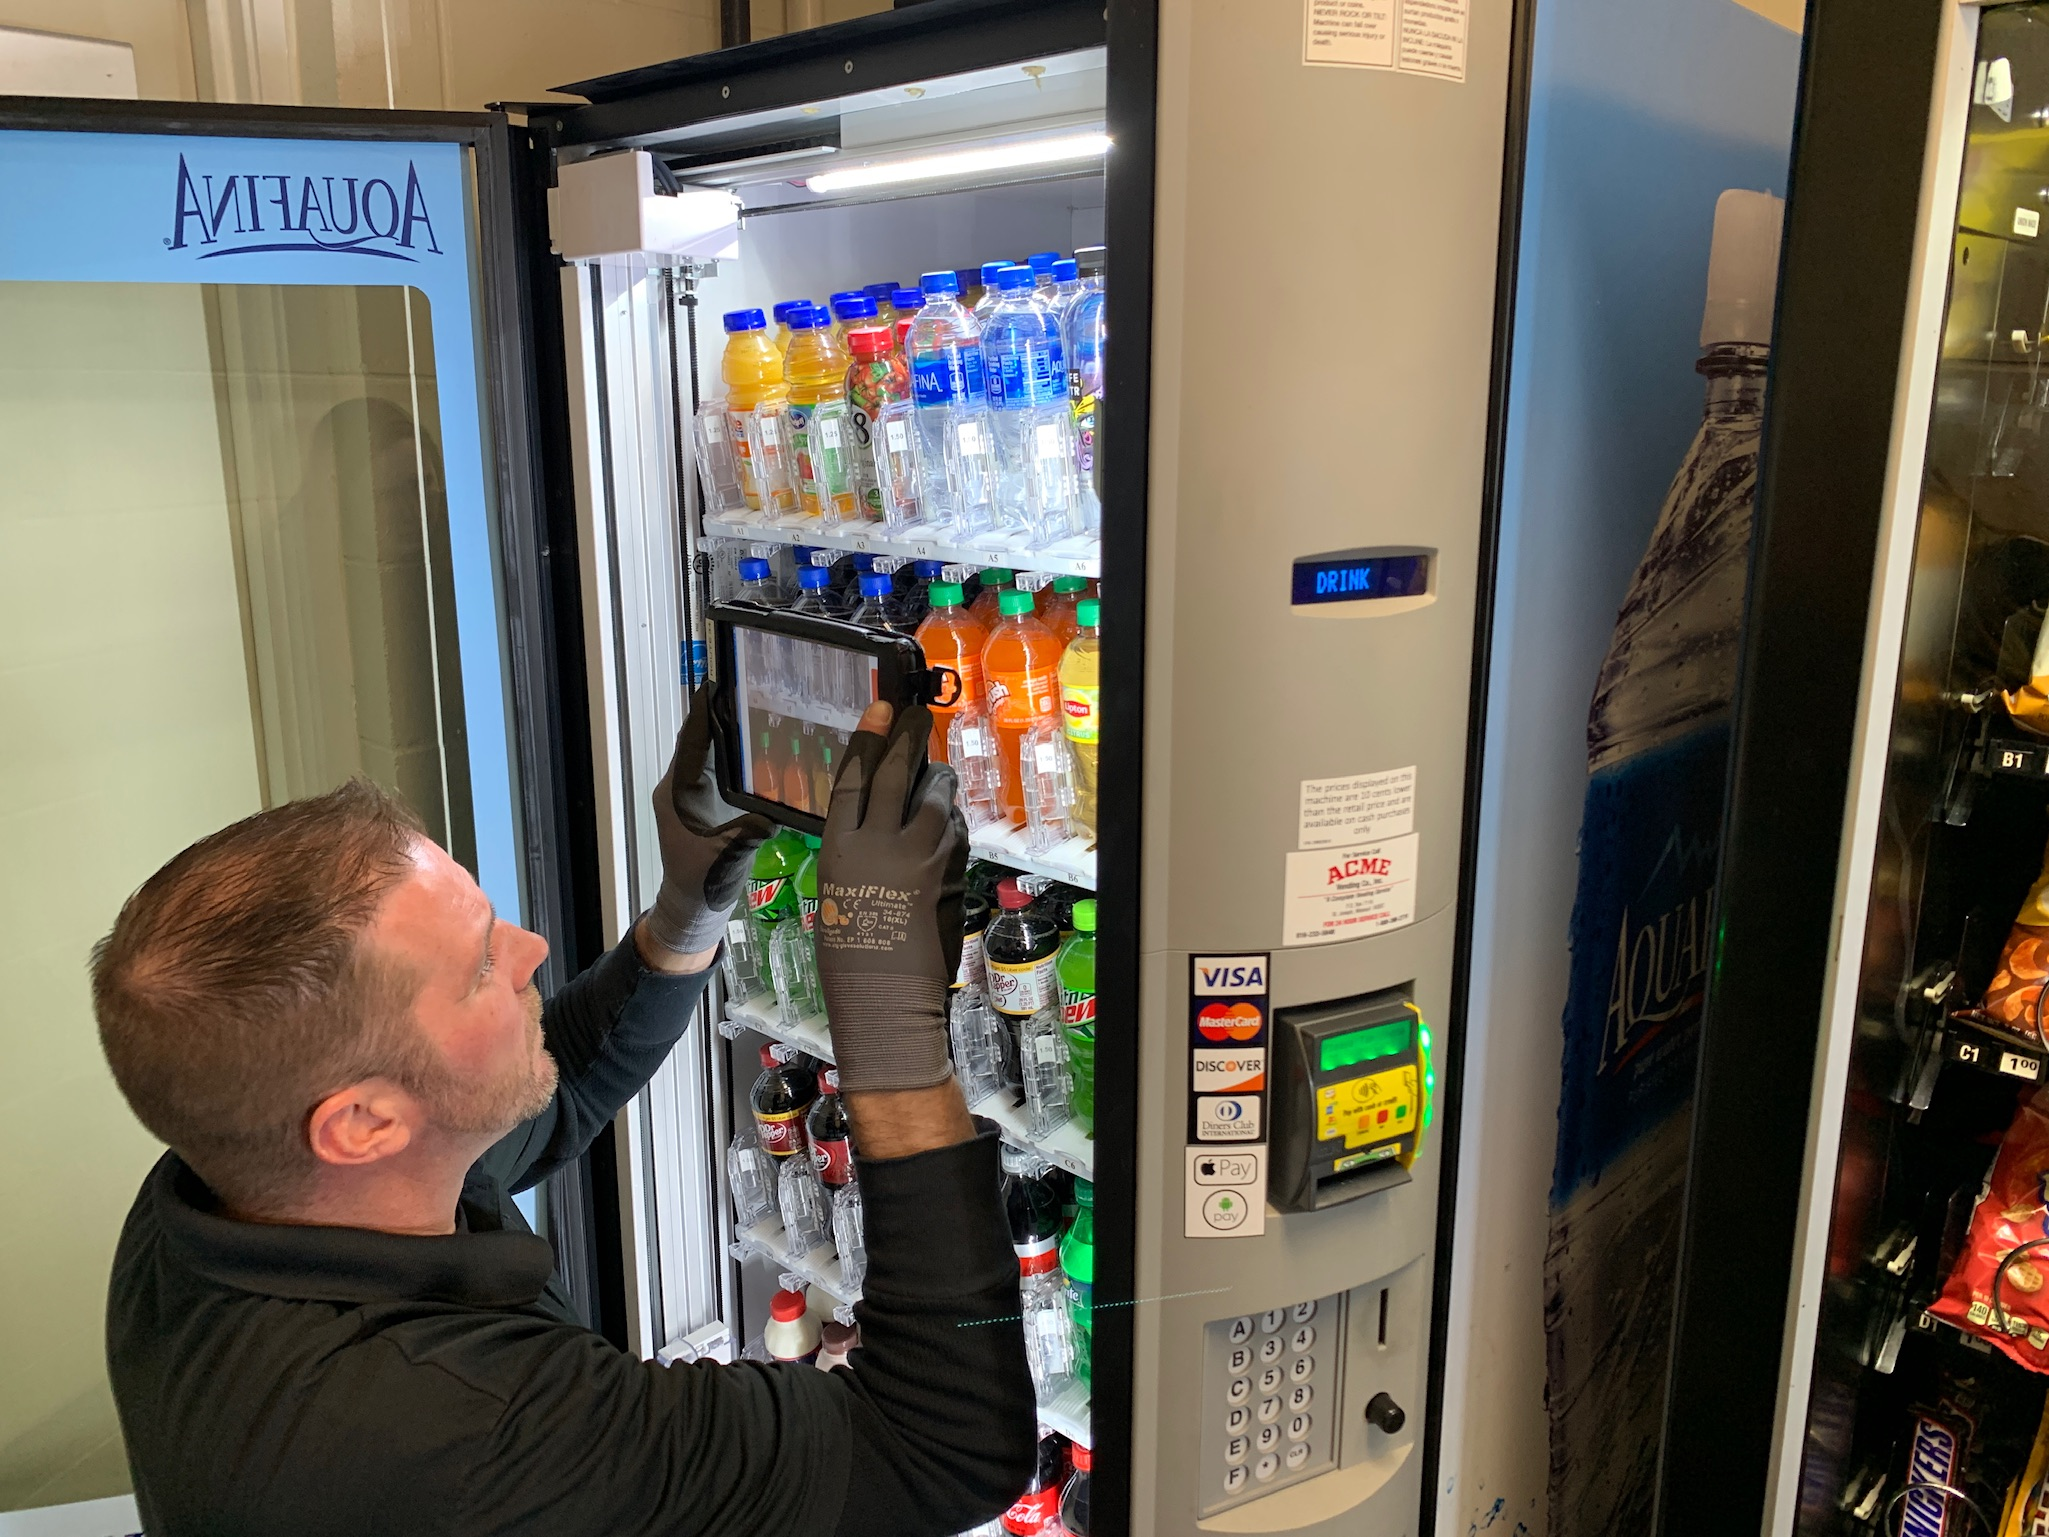 A route driver, Casey, from Acme Music & Vending using Gimme AutoDrive on a glassfront drink vending machine.